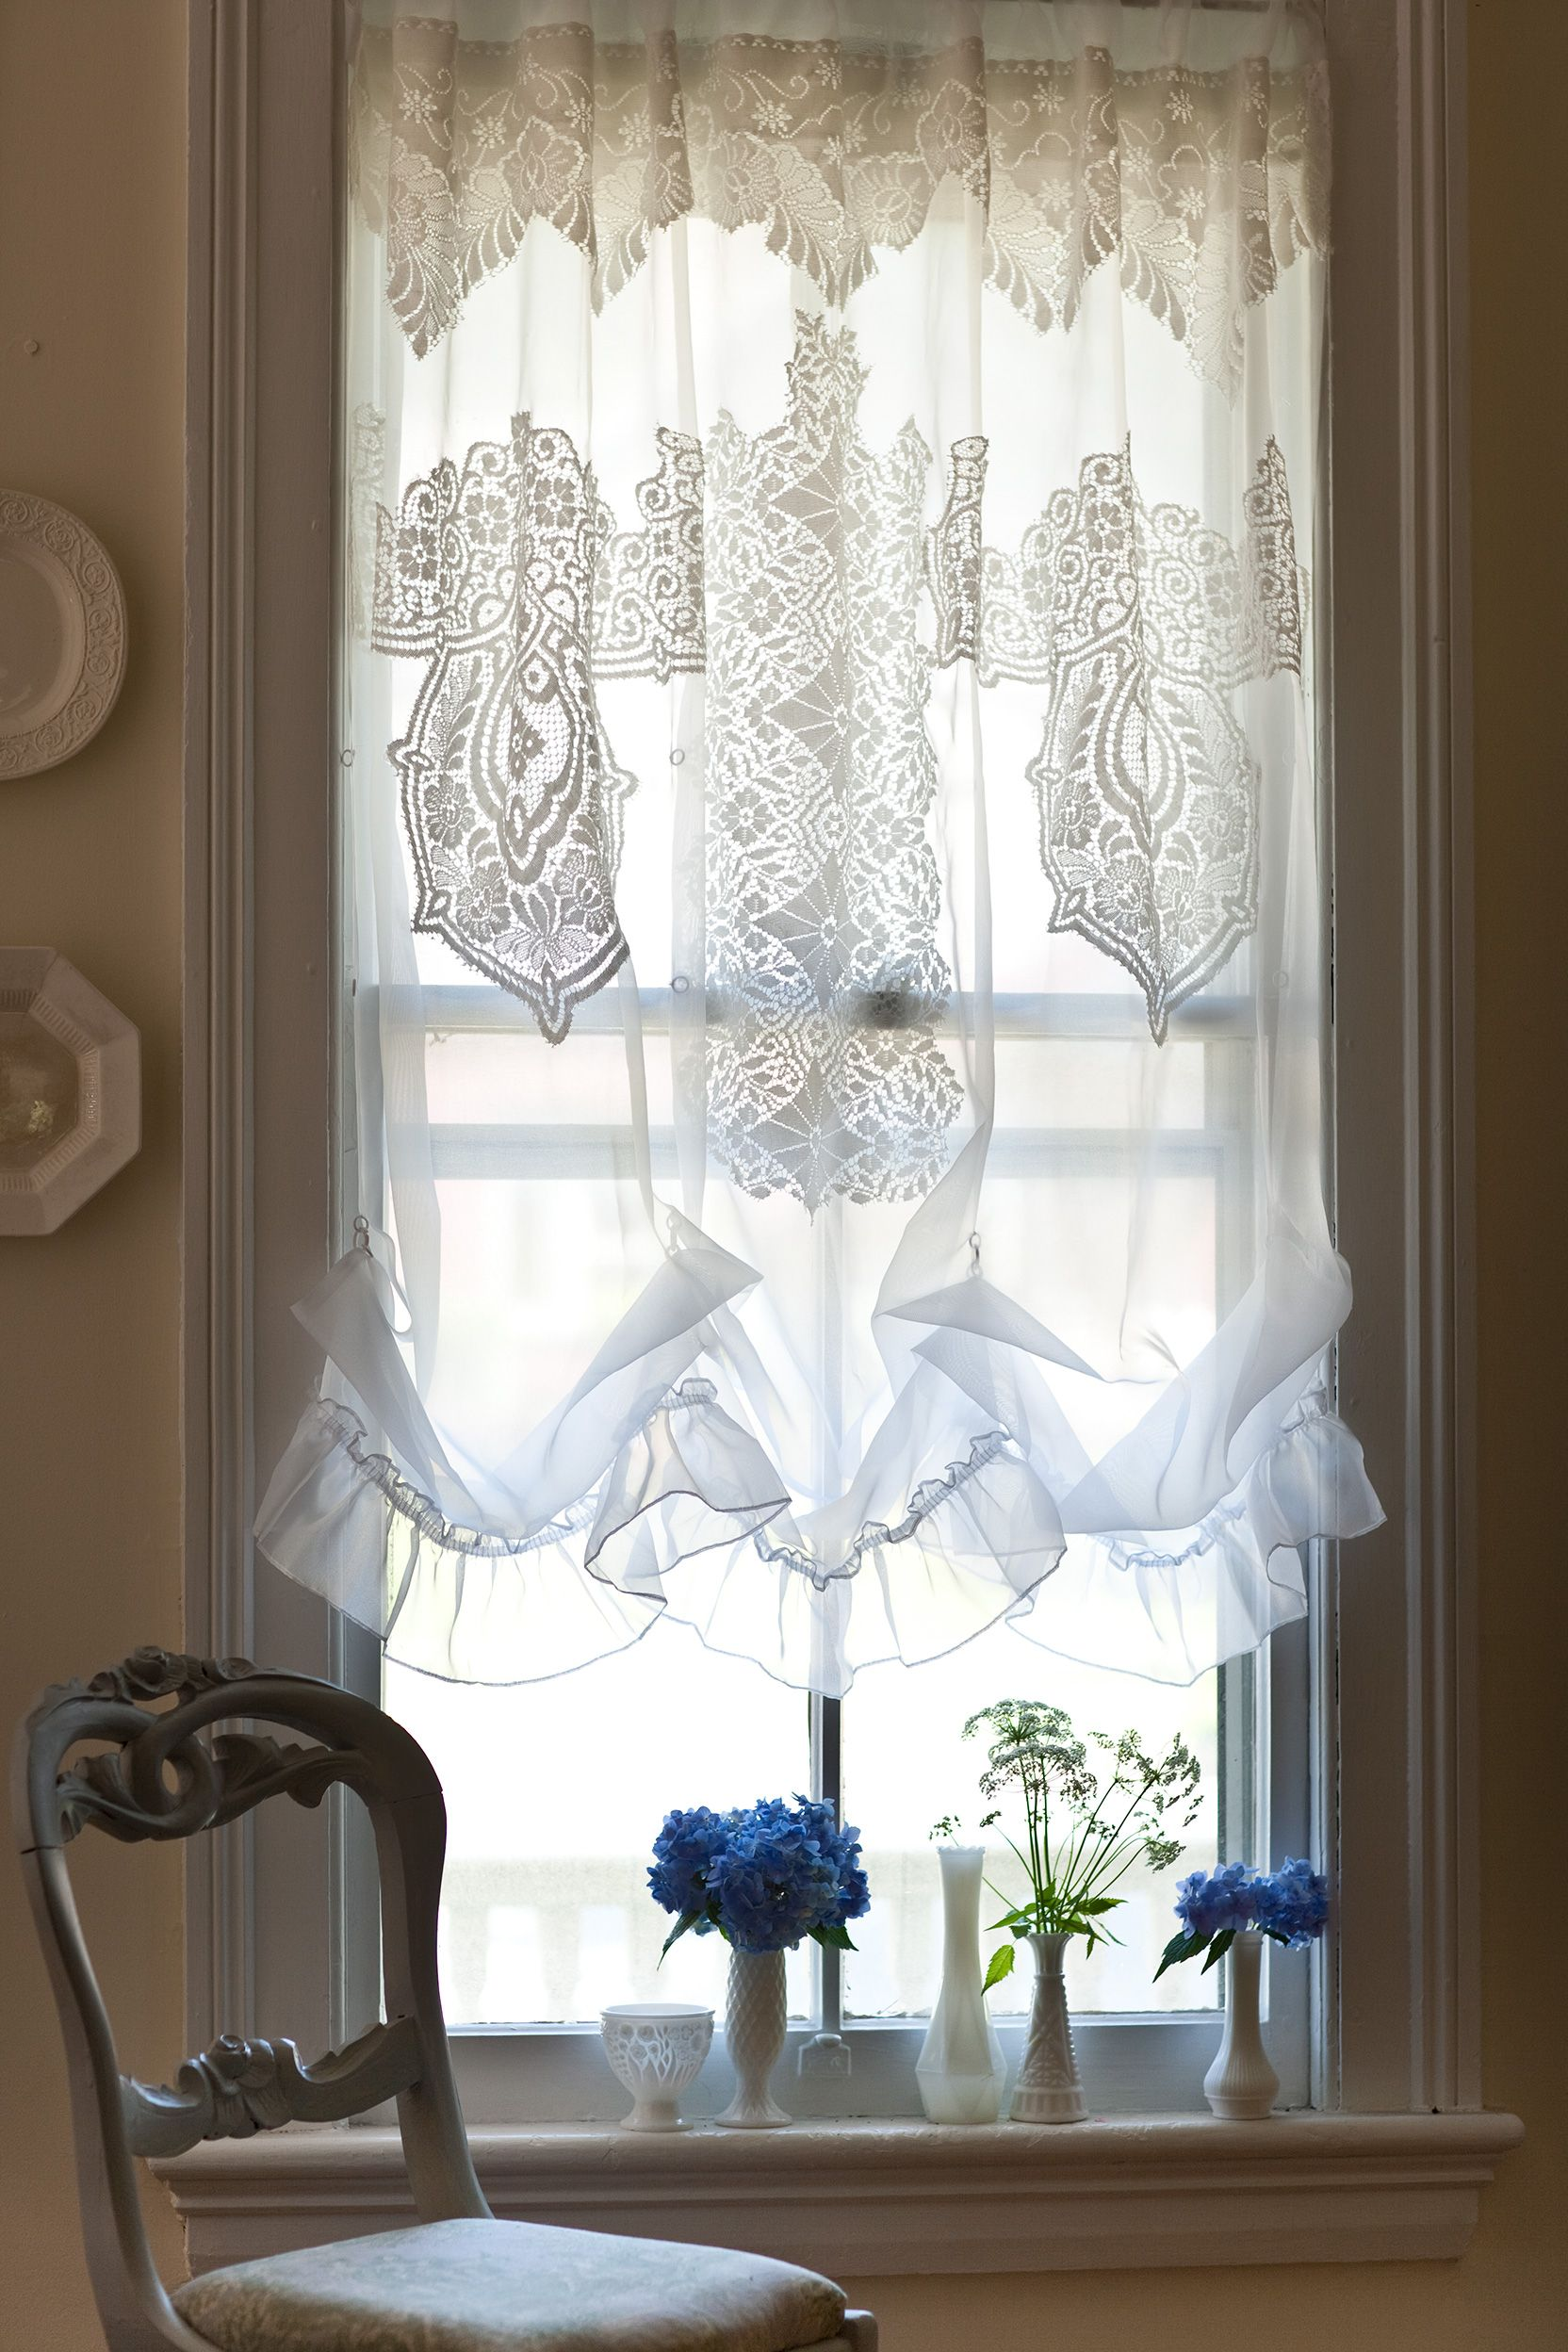 17 Rustic Window Treatments You Ll Want To Try Now Our